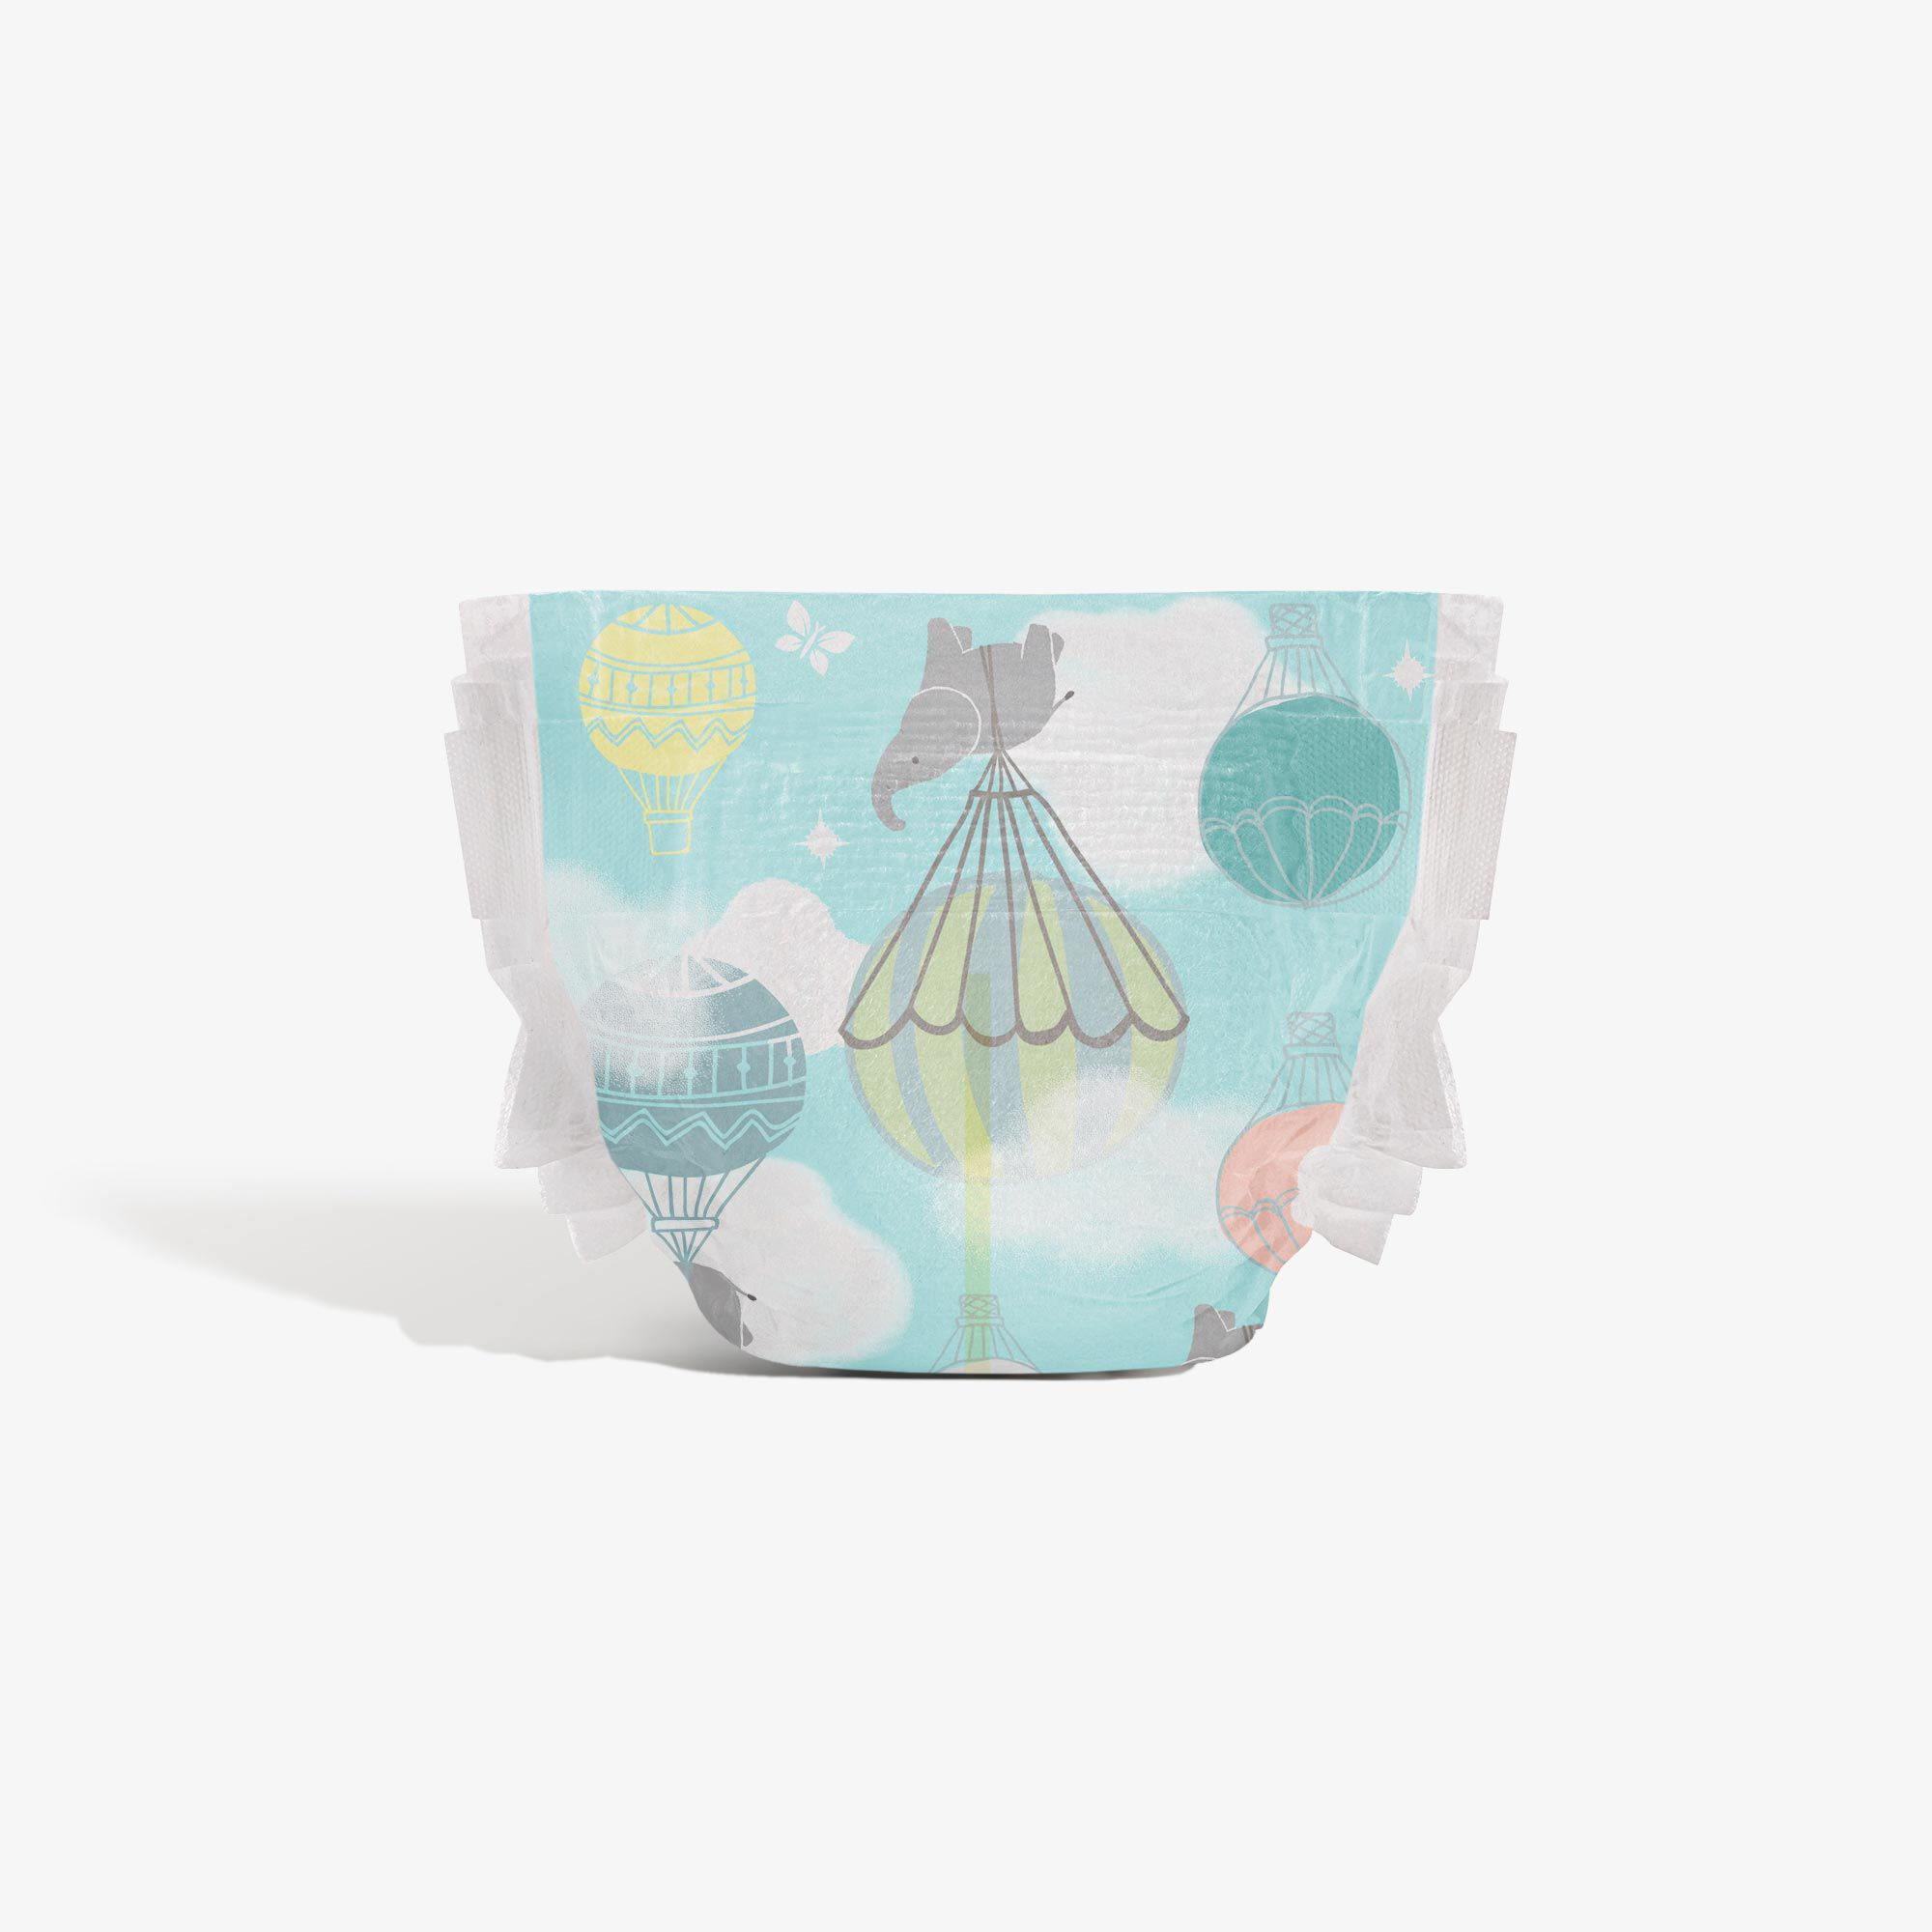 Clean Conscious Diaper, Above It All, Size 1